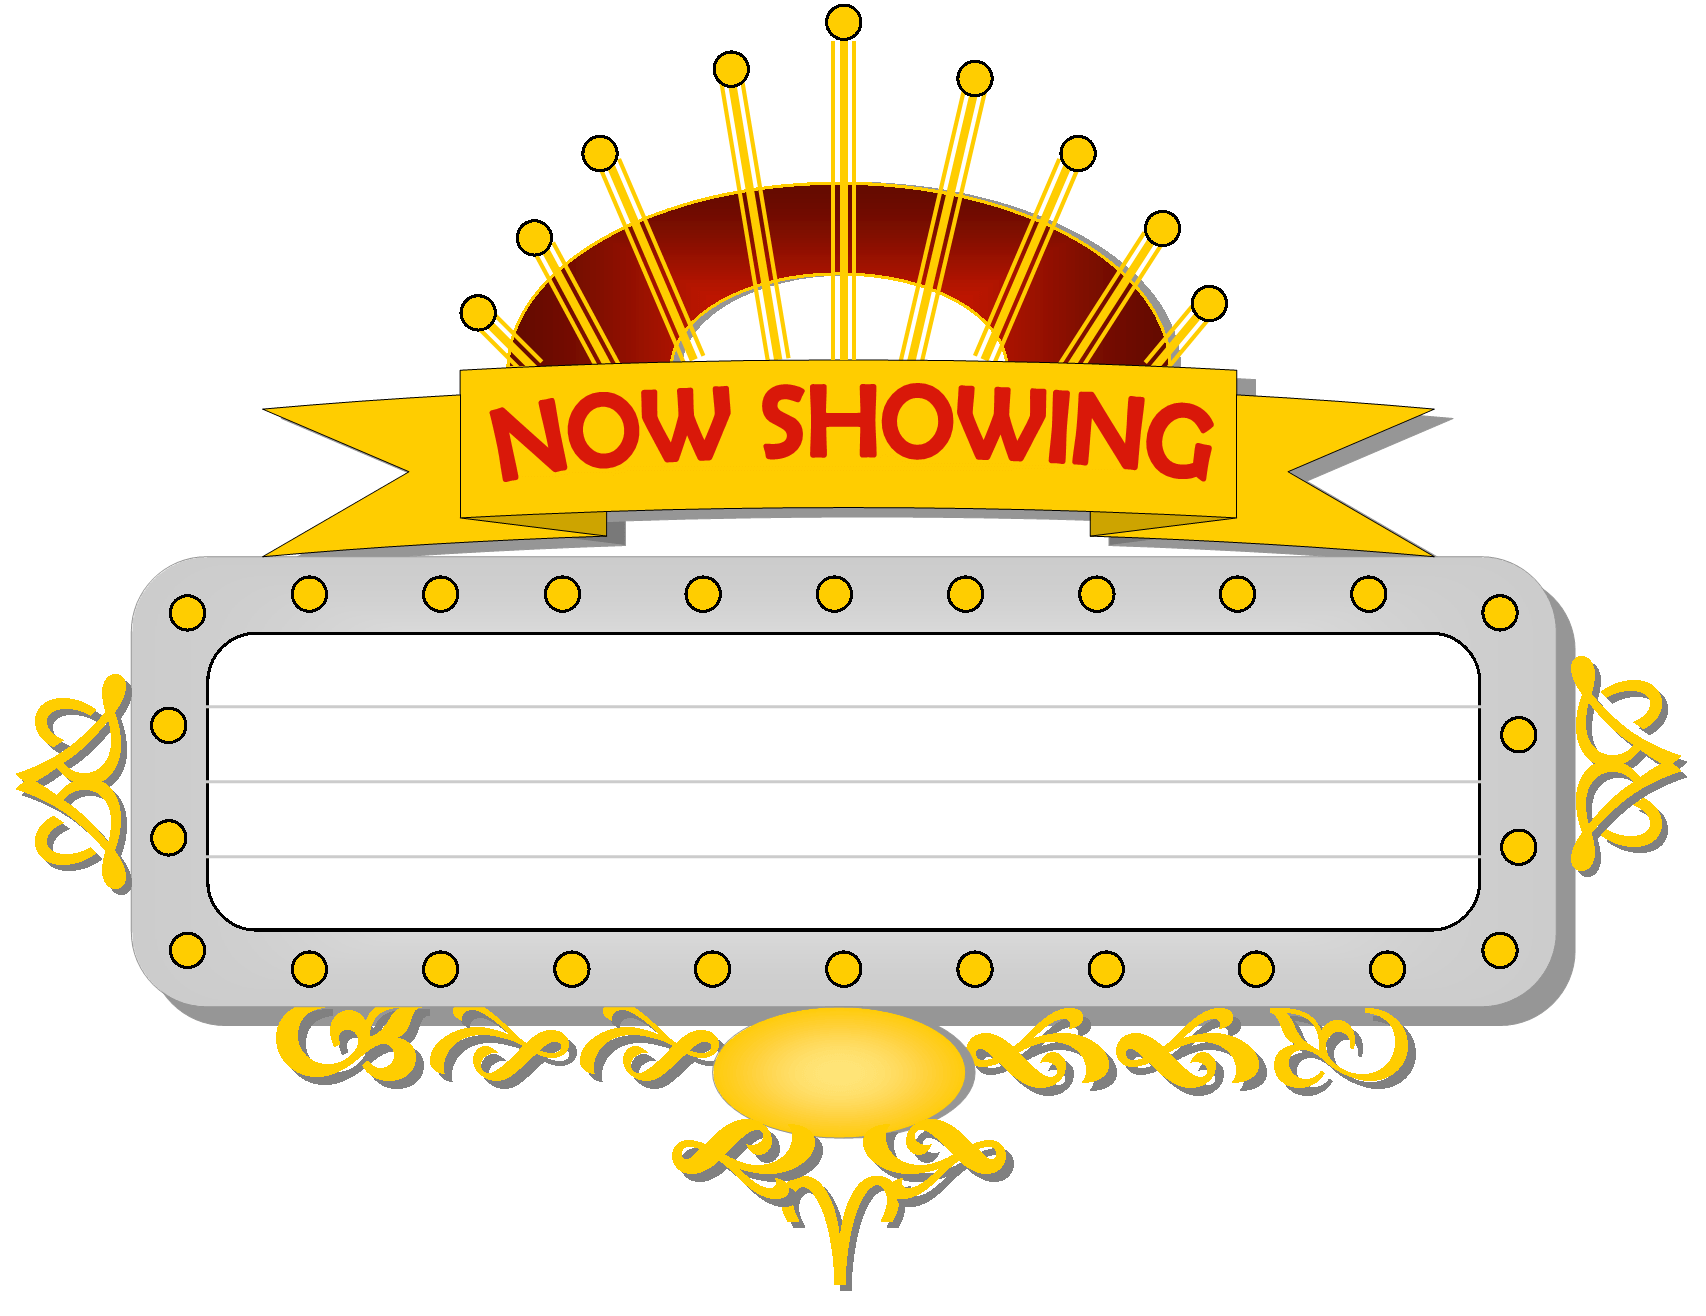 Marquee clipart movie themed. Image signs clip art